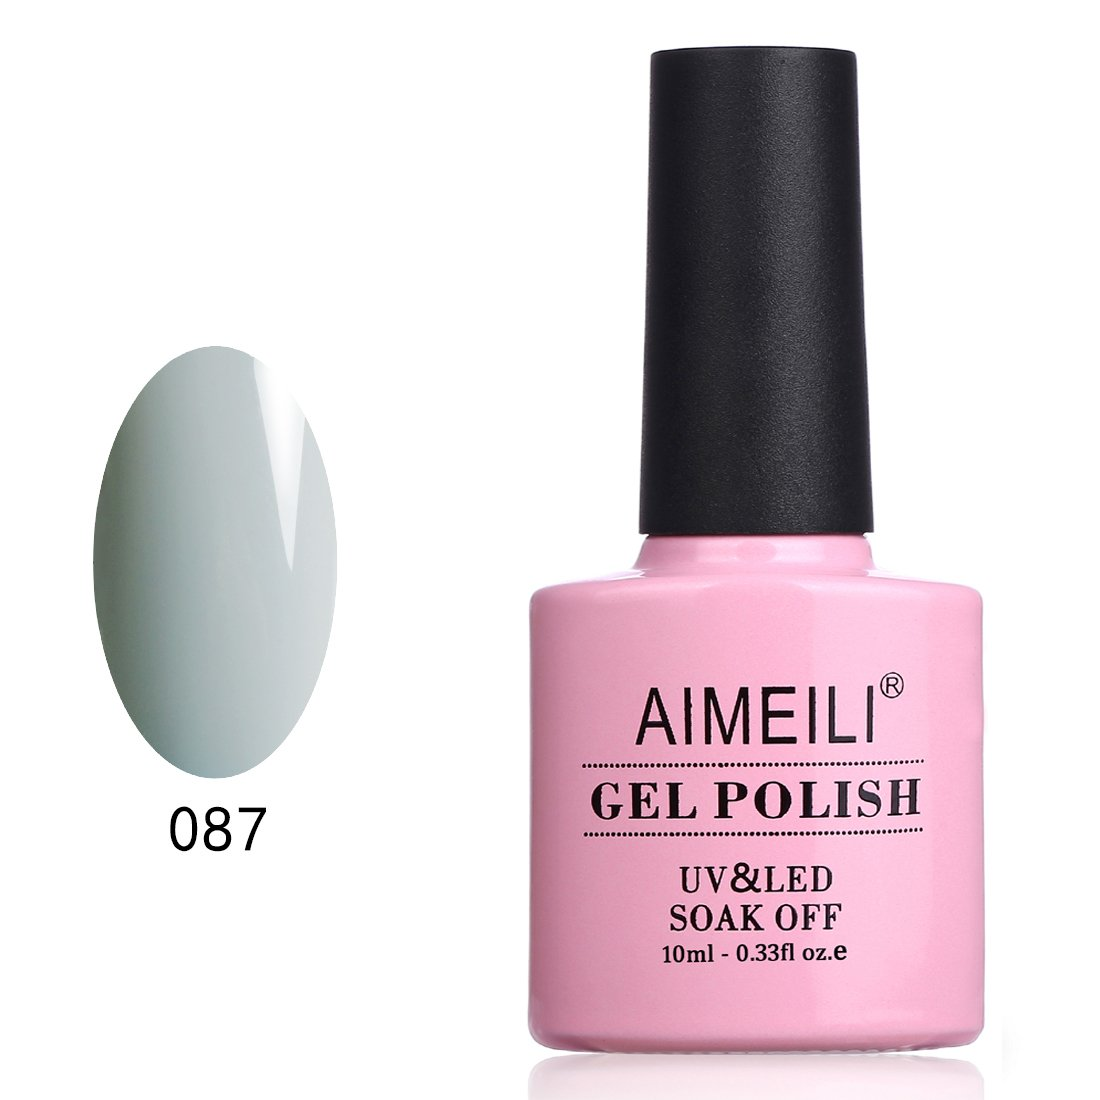 AIMEILI Soak Off UV LED Vernis à Ongles Gel Semi-Permanent Gris Gel Polish - Wish Before Dark (087) 10ml product image